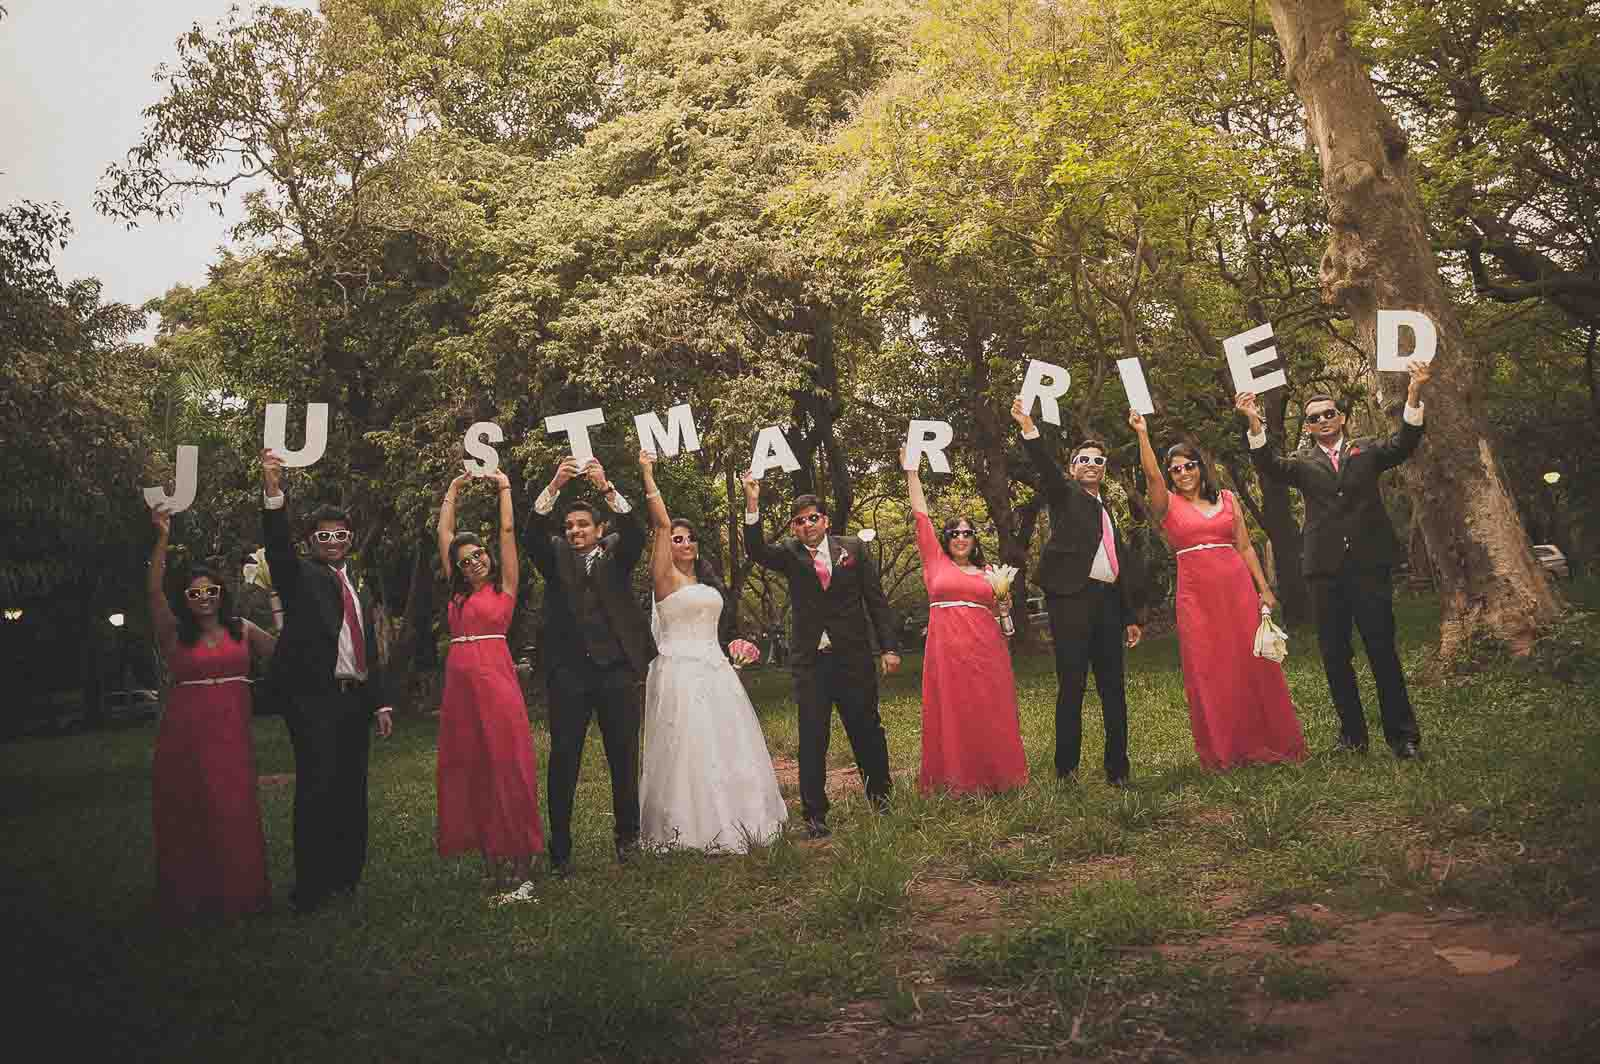 Best Wedding Photographer Thailand | Group Photography with Just Married Sign